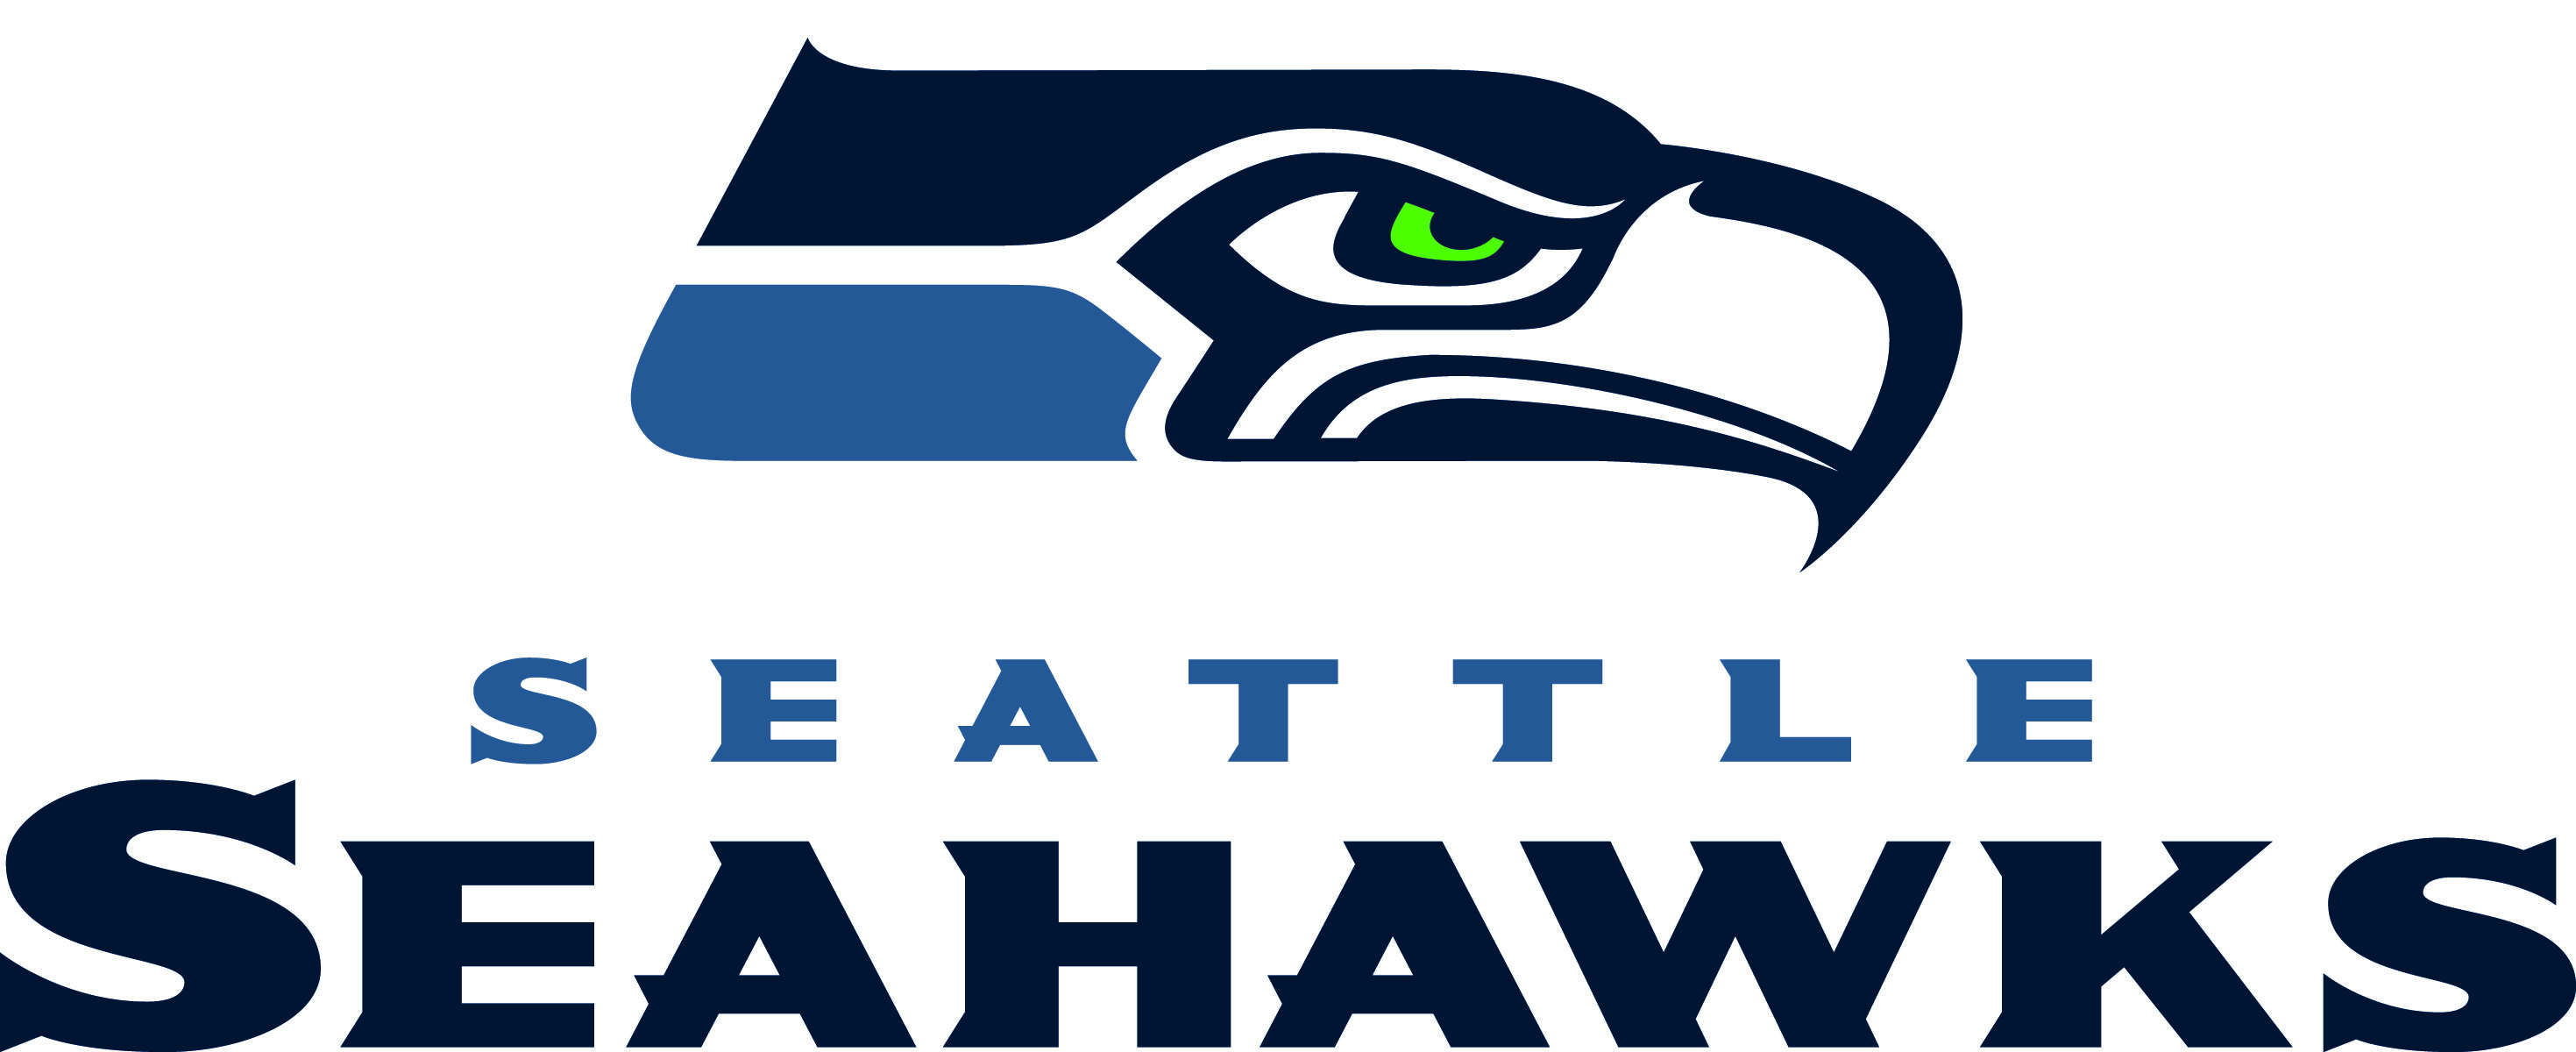 Free Seattle Seahawks, Download Free Clip Art, Free Clip Art.